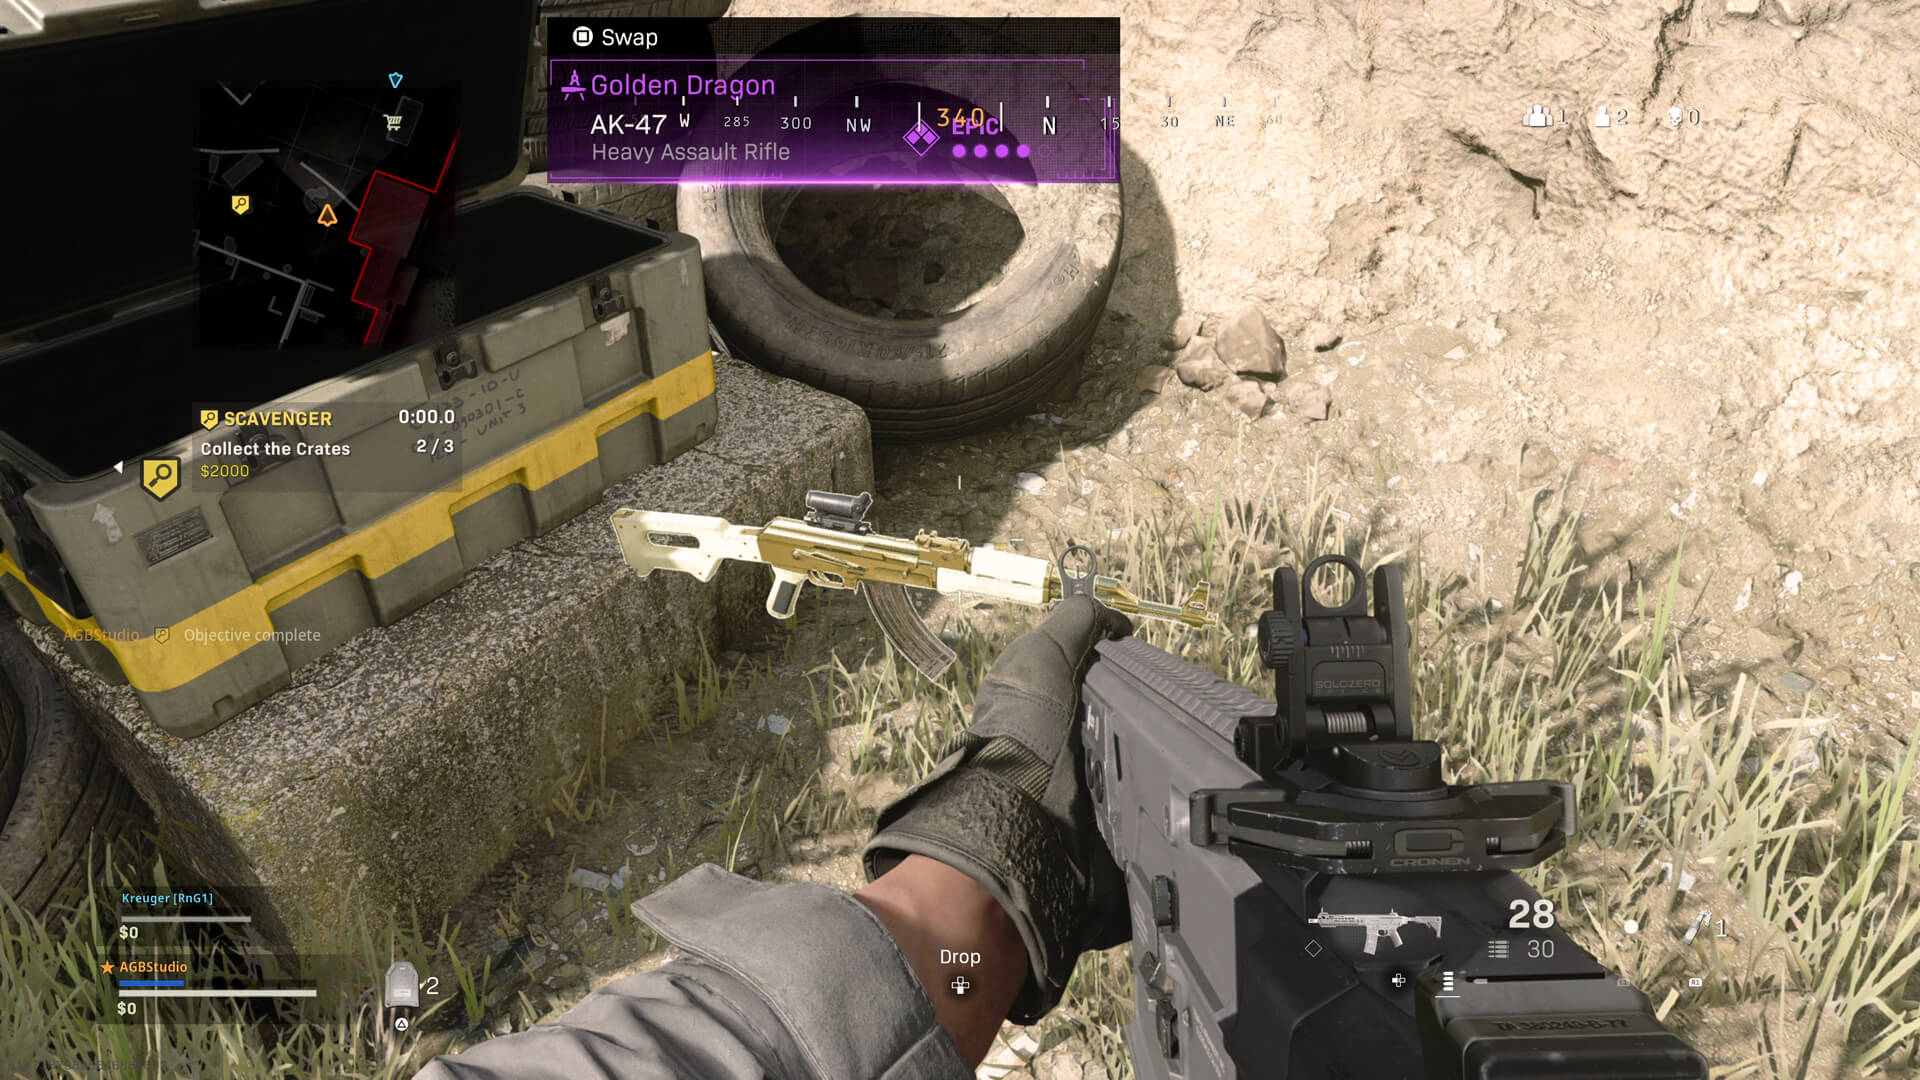 Player inspecting weapon in Warzone.